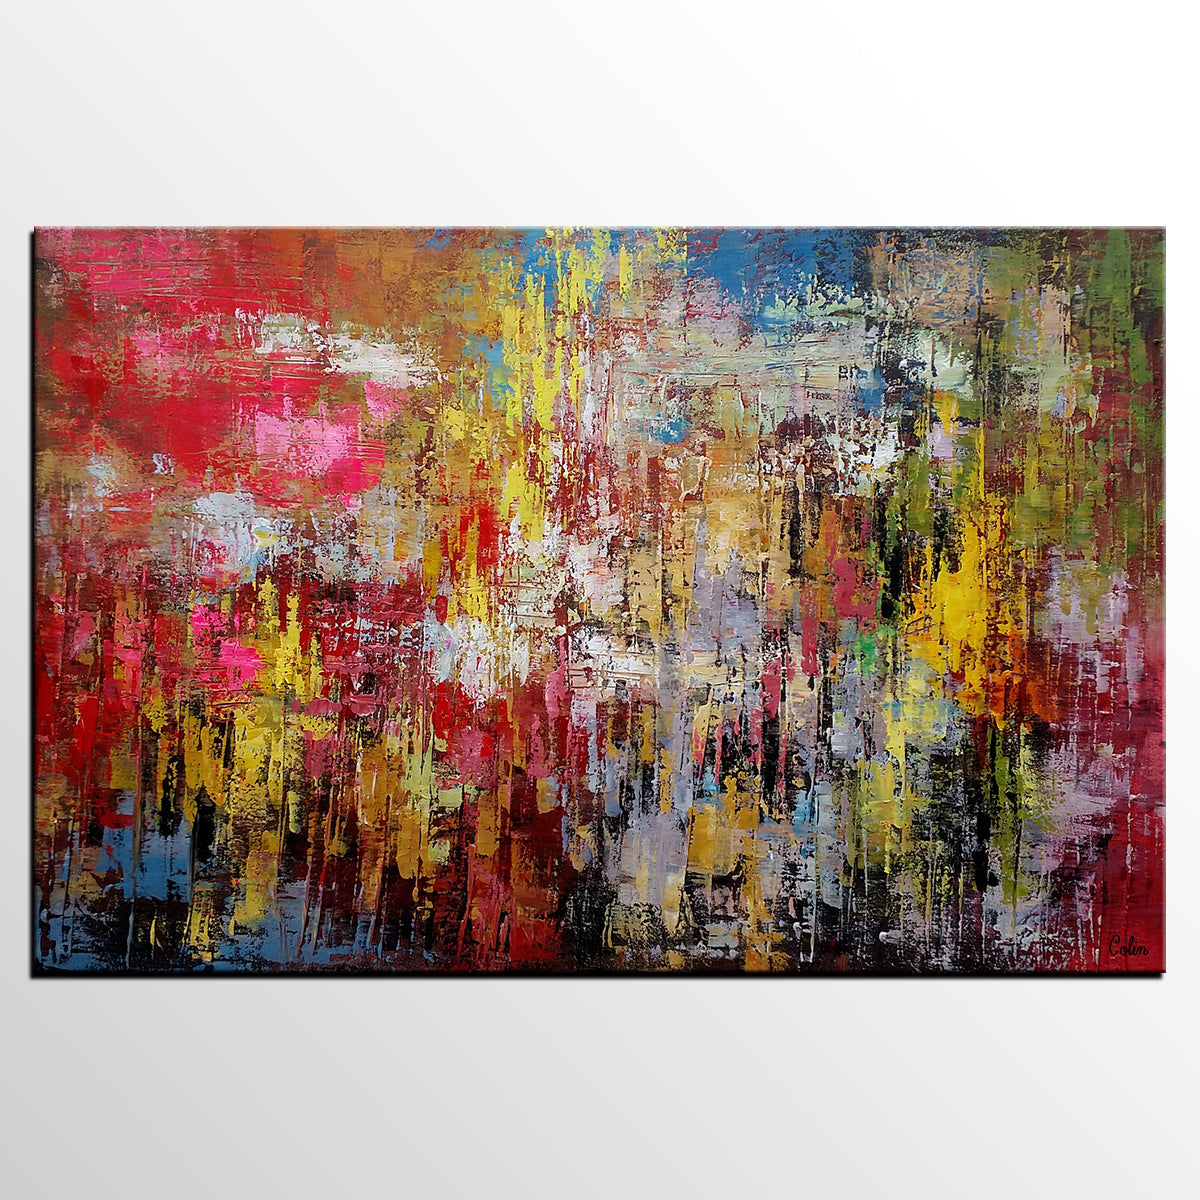 Canvas Painting, Original Wall Art, Abstract Painting, Large Art, Canvas Art, Wall Art, Abstract Art, Canvas Painting, Modern Art, 331 - artworkcanvas